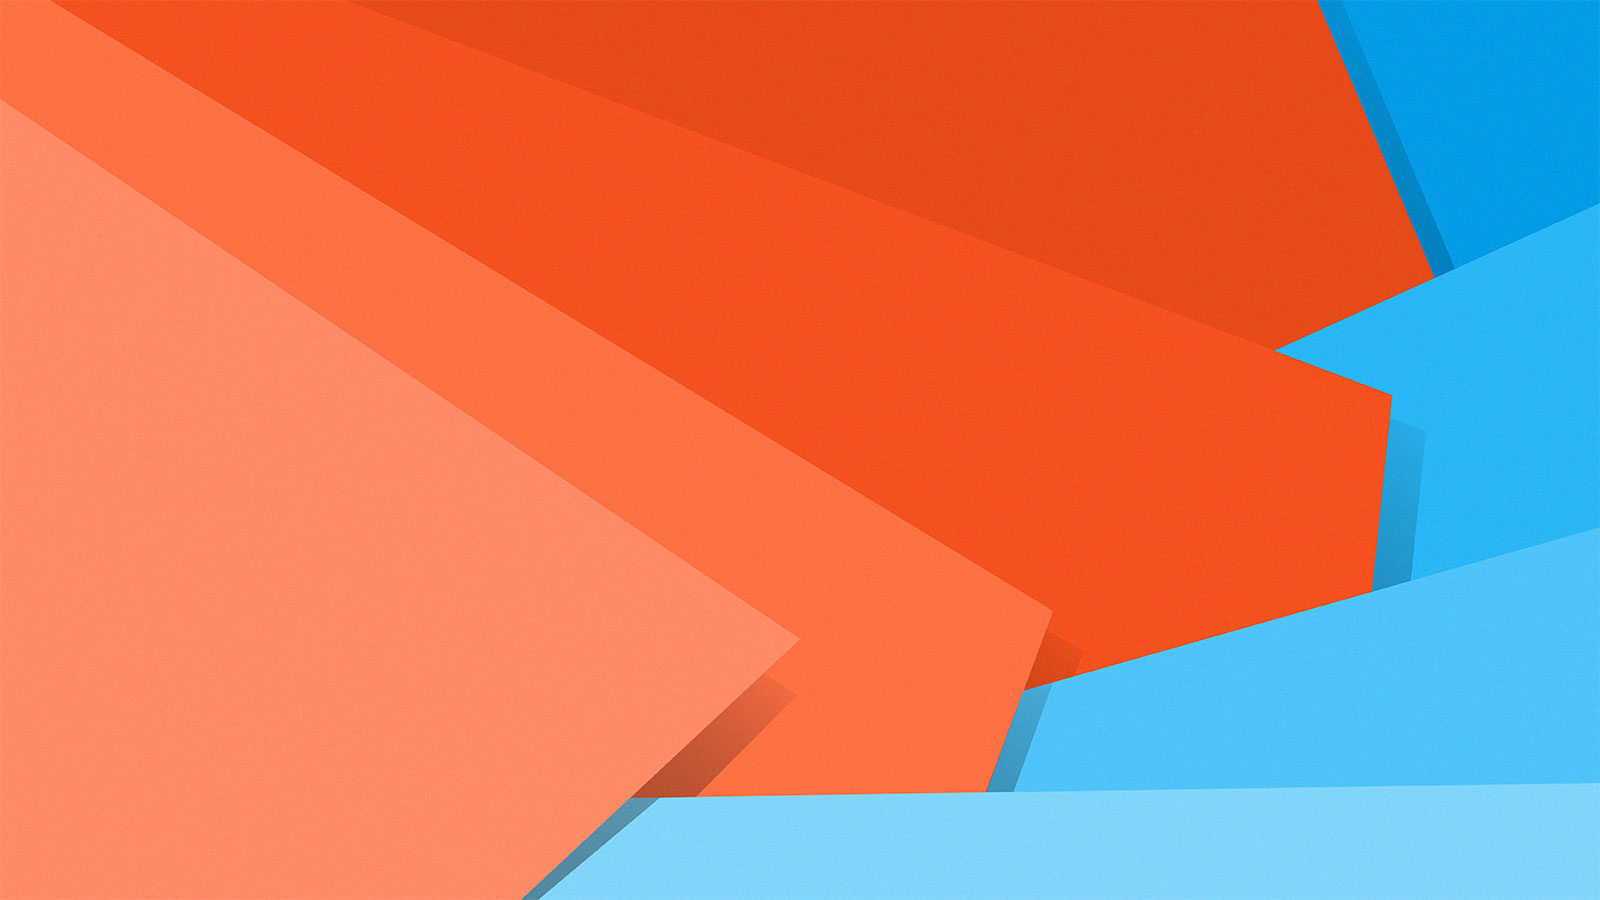 20 Material Design Resources